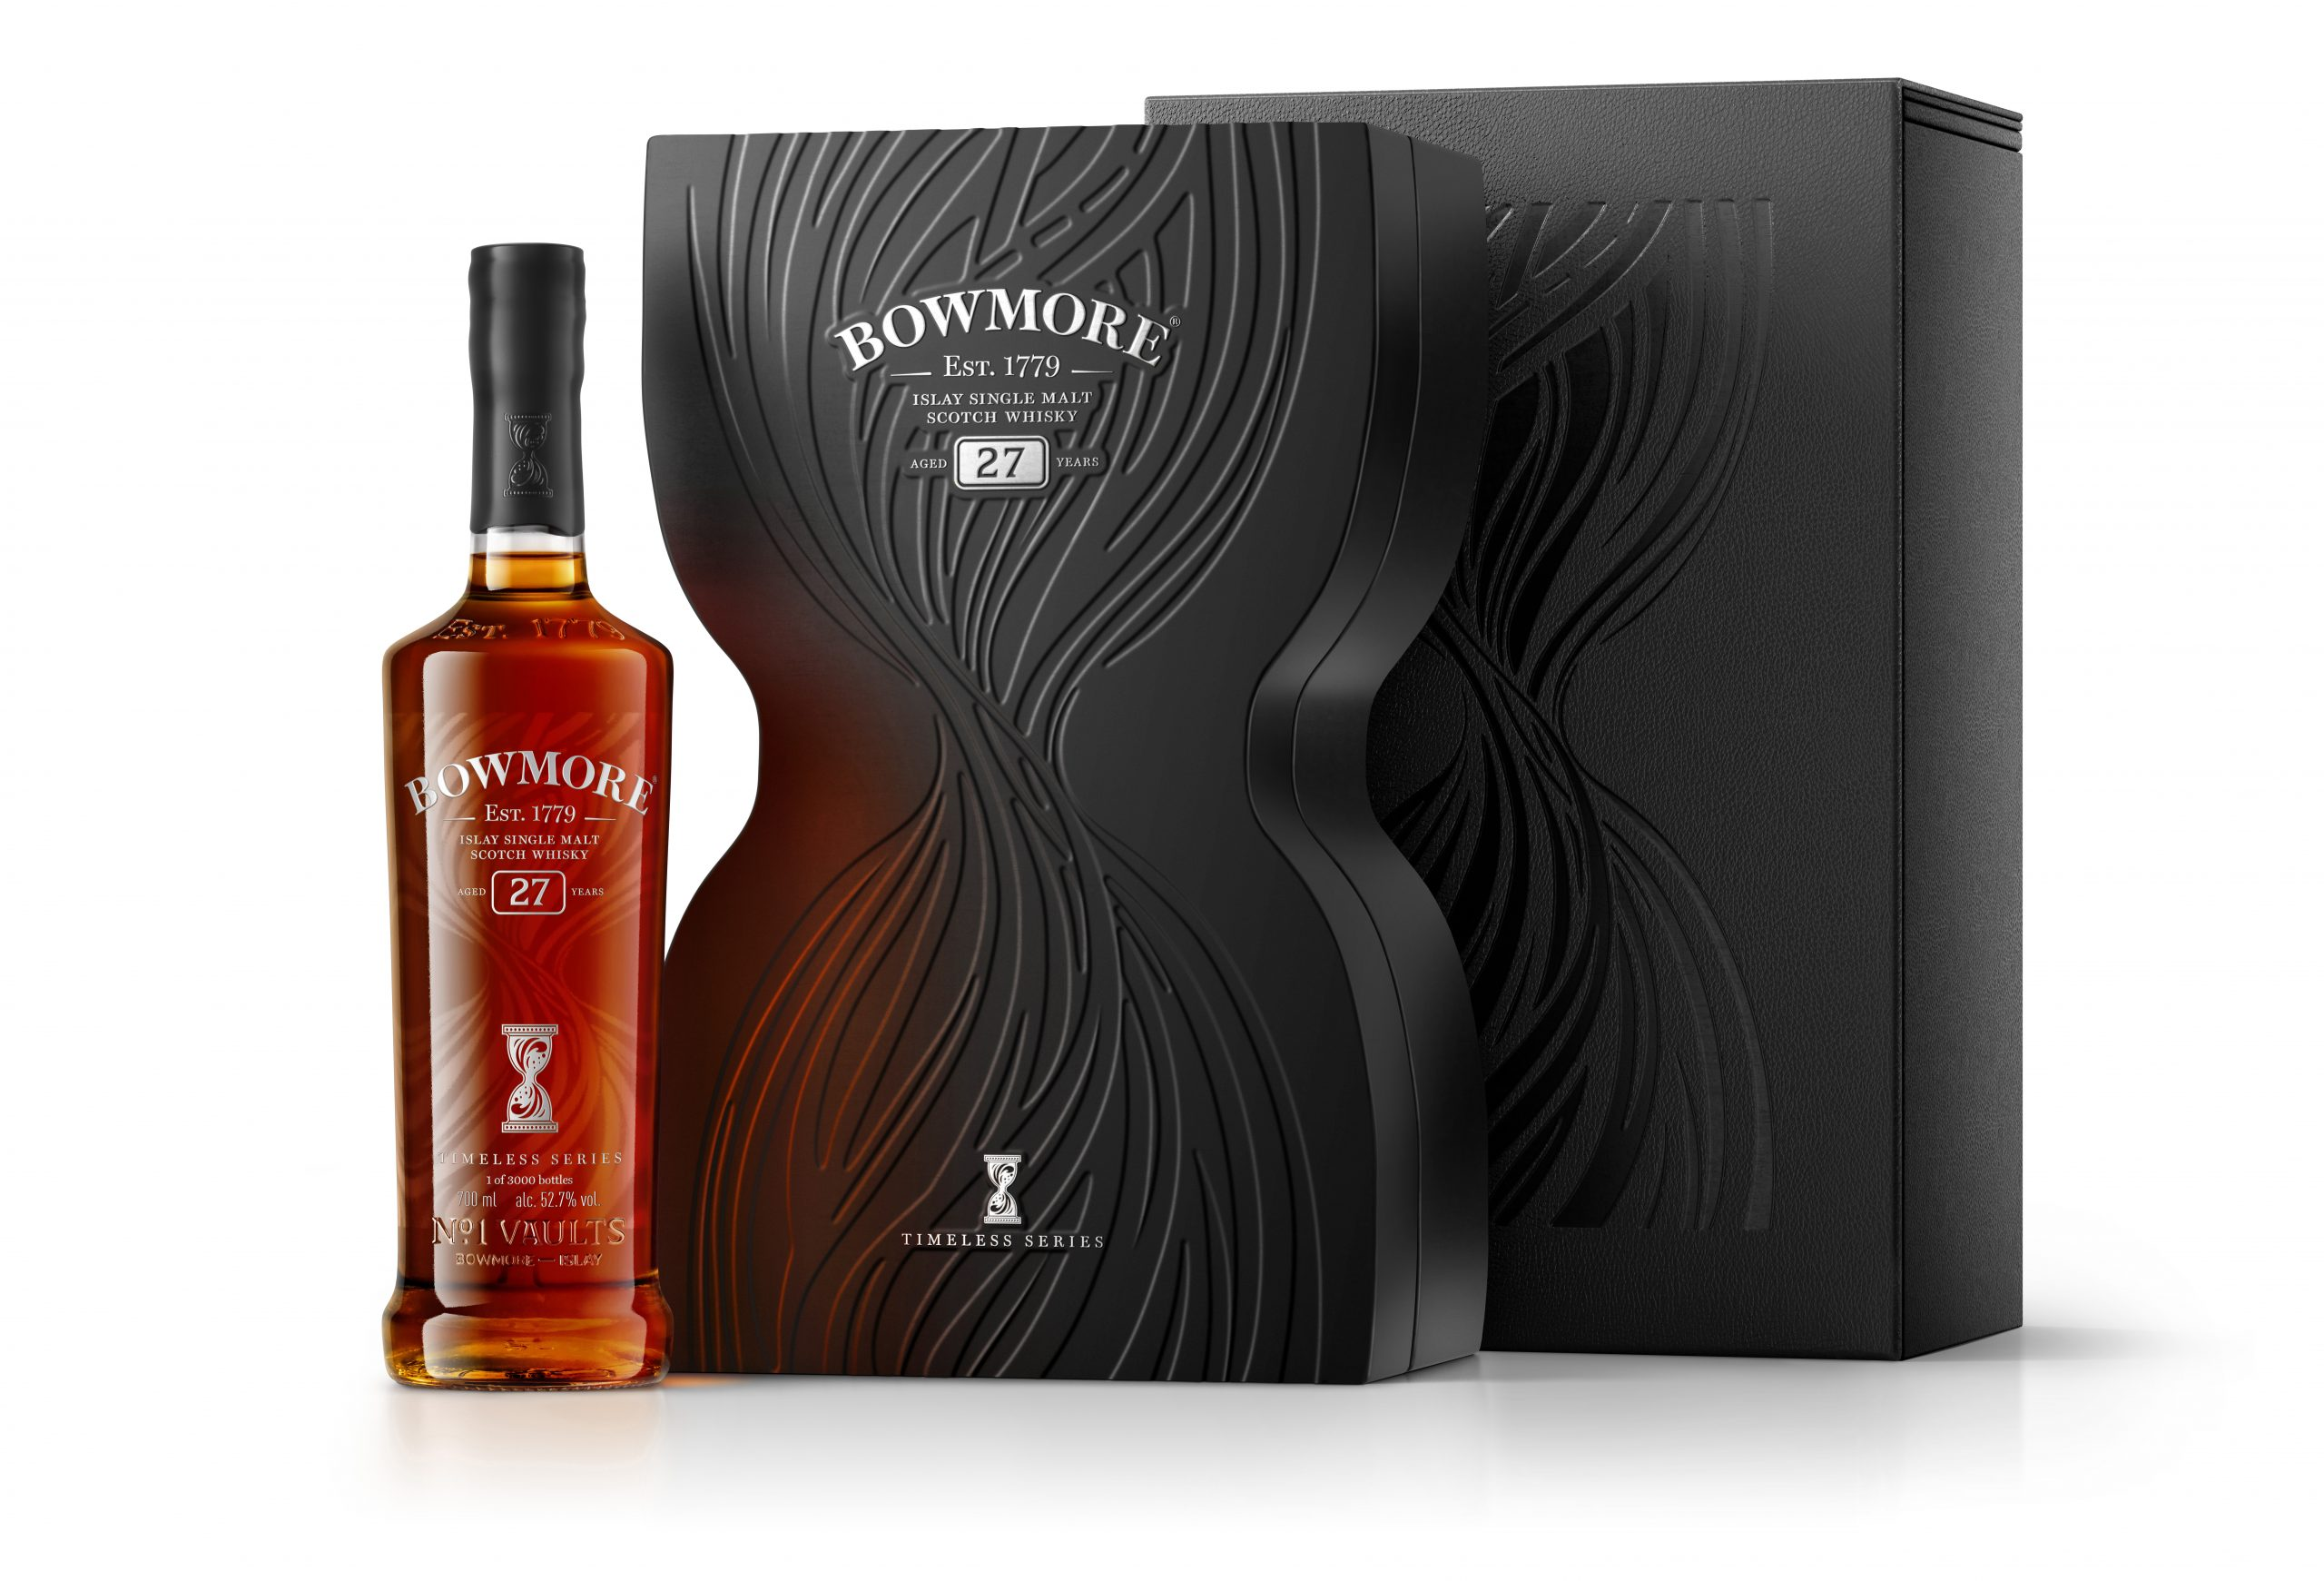 Bowmore 27 Timeless 700ml NO PROOF Bottle next to Inner Closed Box Tertiary Box v2 RGB300 scaled